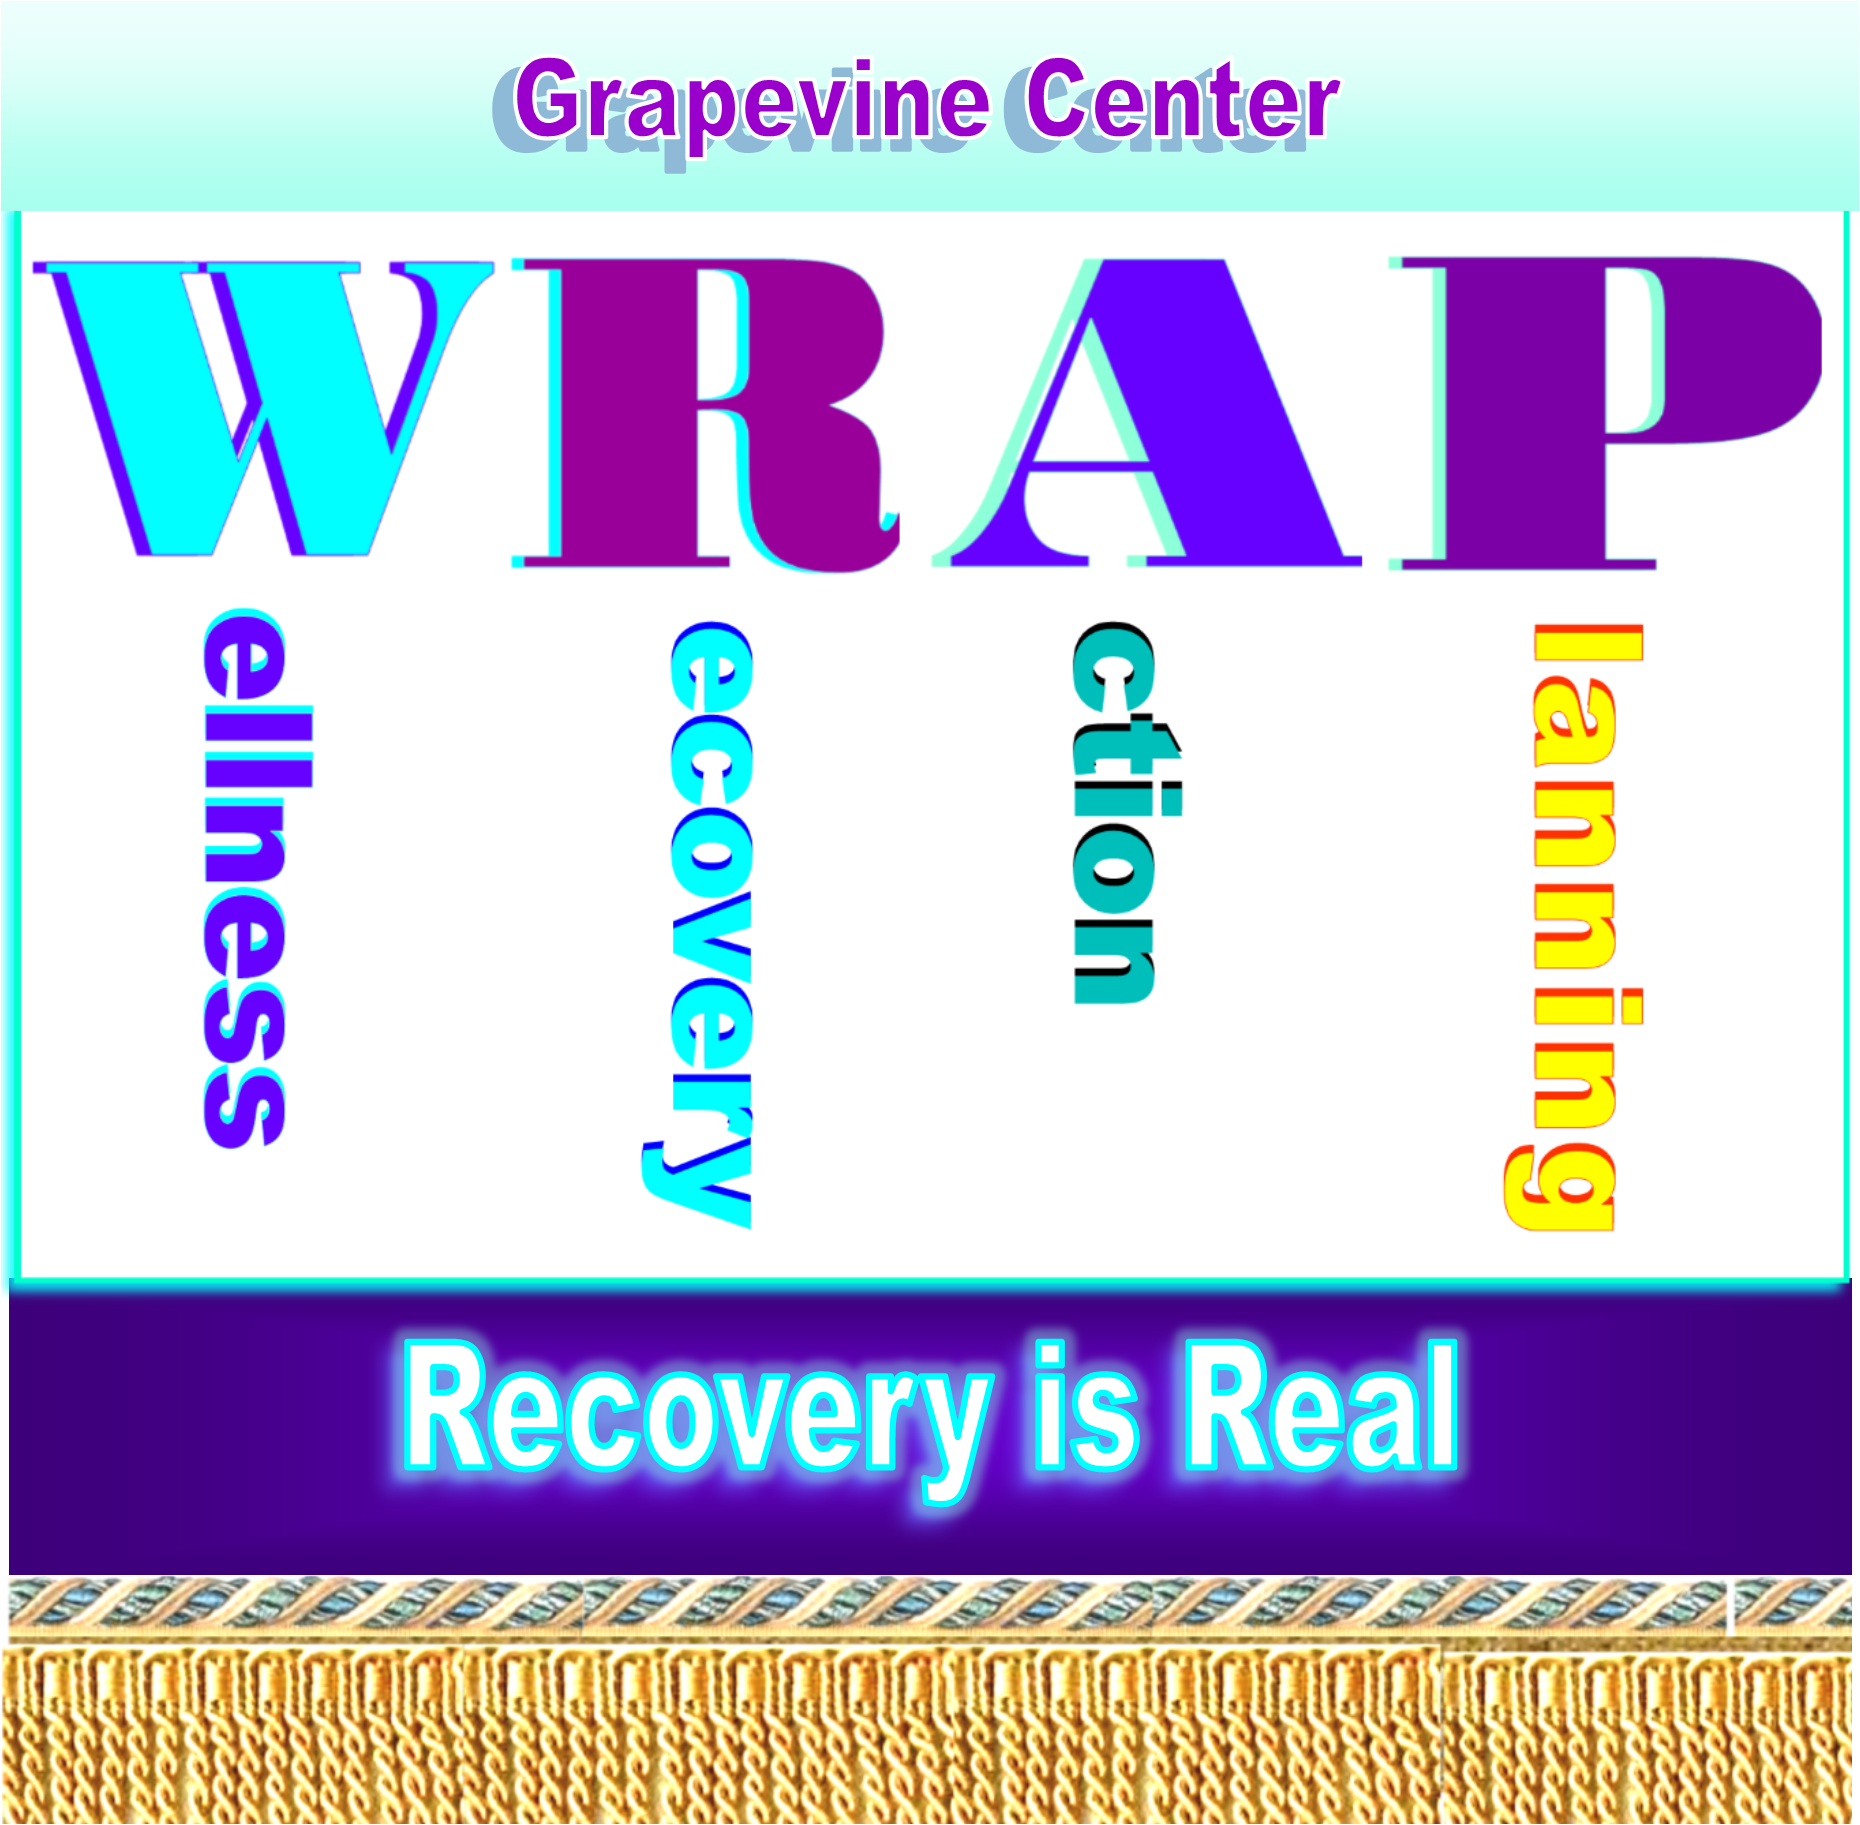 1 WRAP - website 1